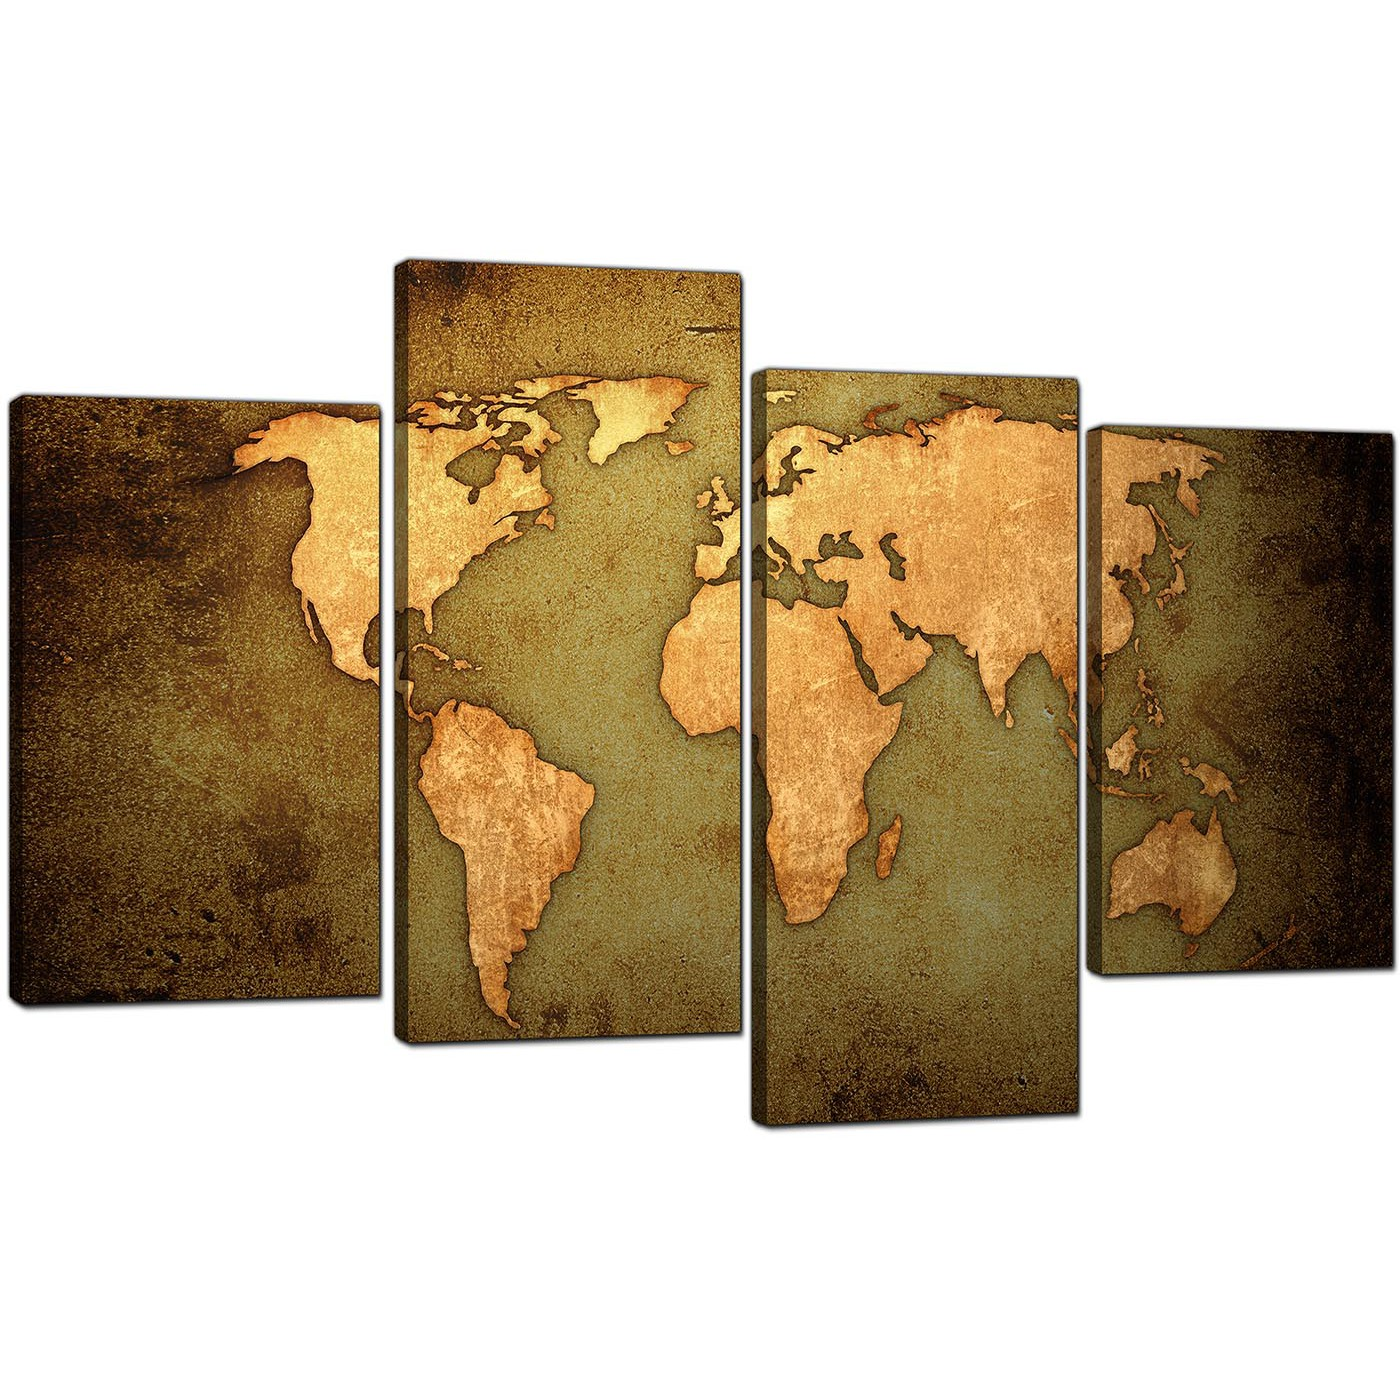 Canvas prints of a world map in green and brown for your living room display gallery item 3 world map canvas art in antique style for office display gallery item 4 gumiabroncs Image collections